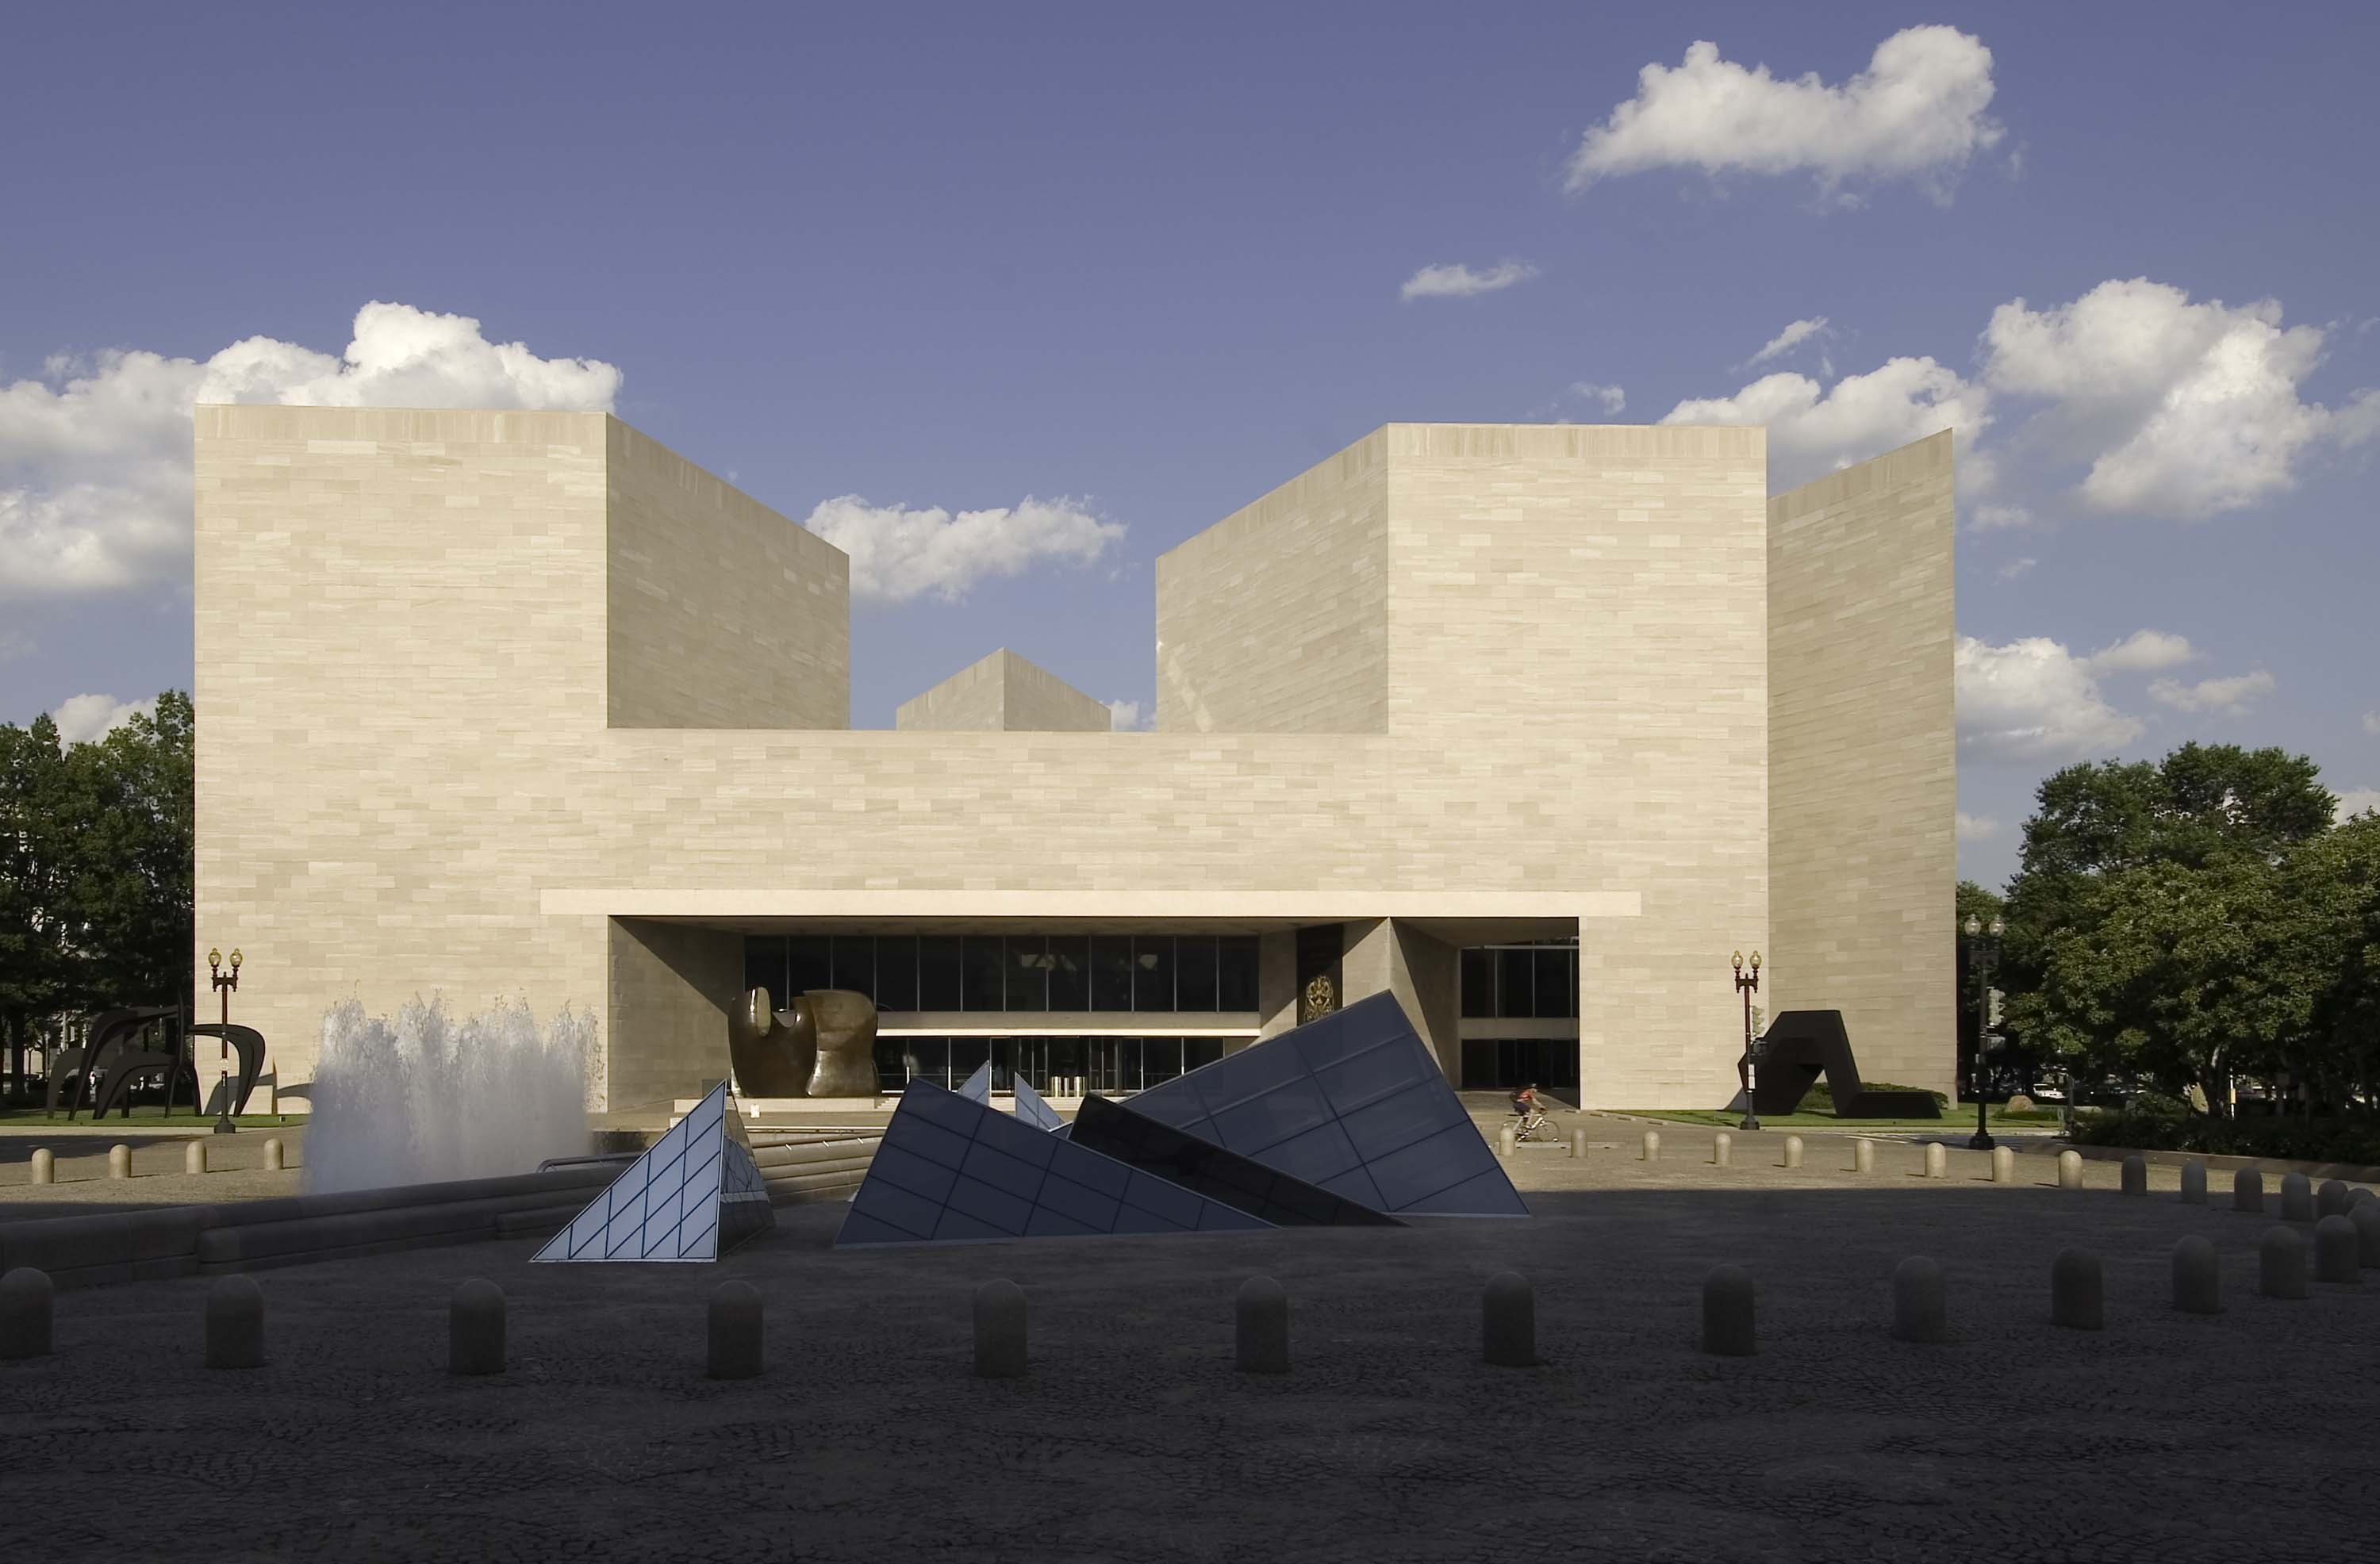 The East Building of the National Gallery of Art, designed by I. M. Pei. Photo © Dennis Brack/Black Star. National Gallery of Art, Washington, Gallery Archives